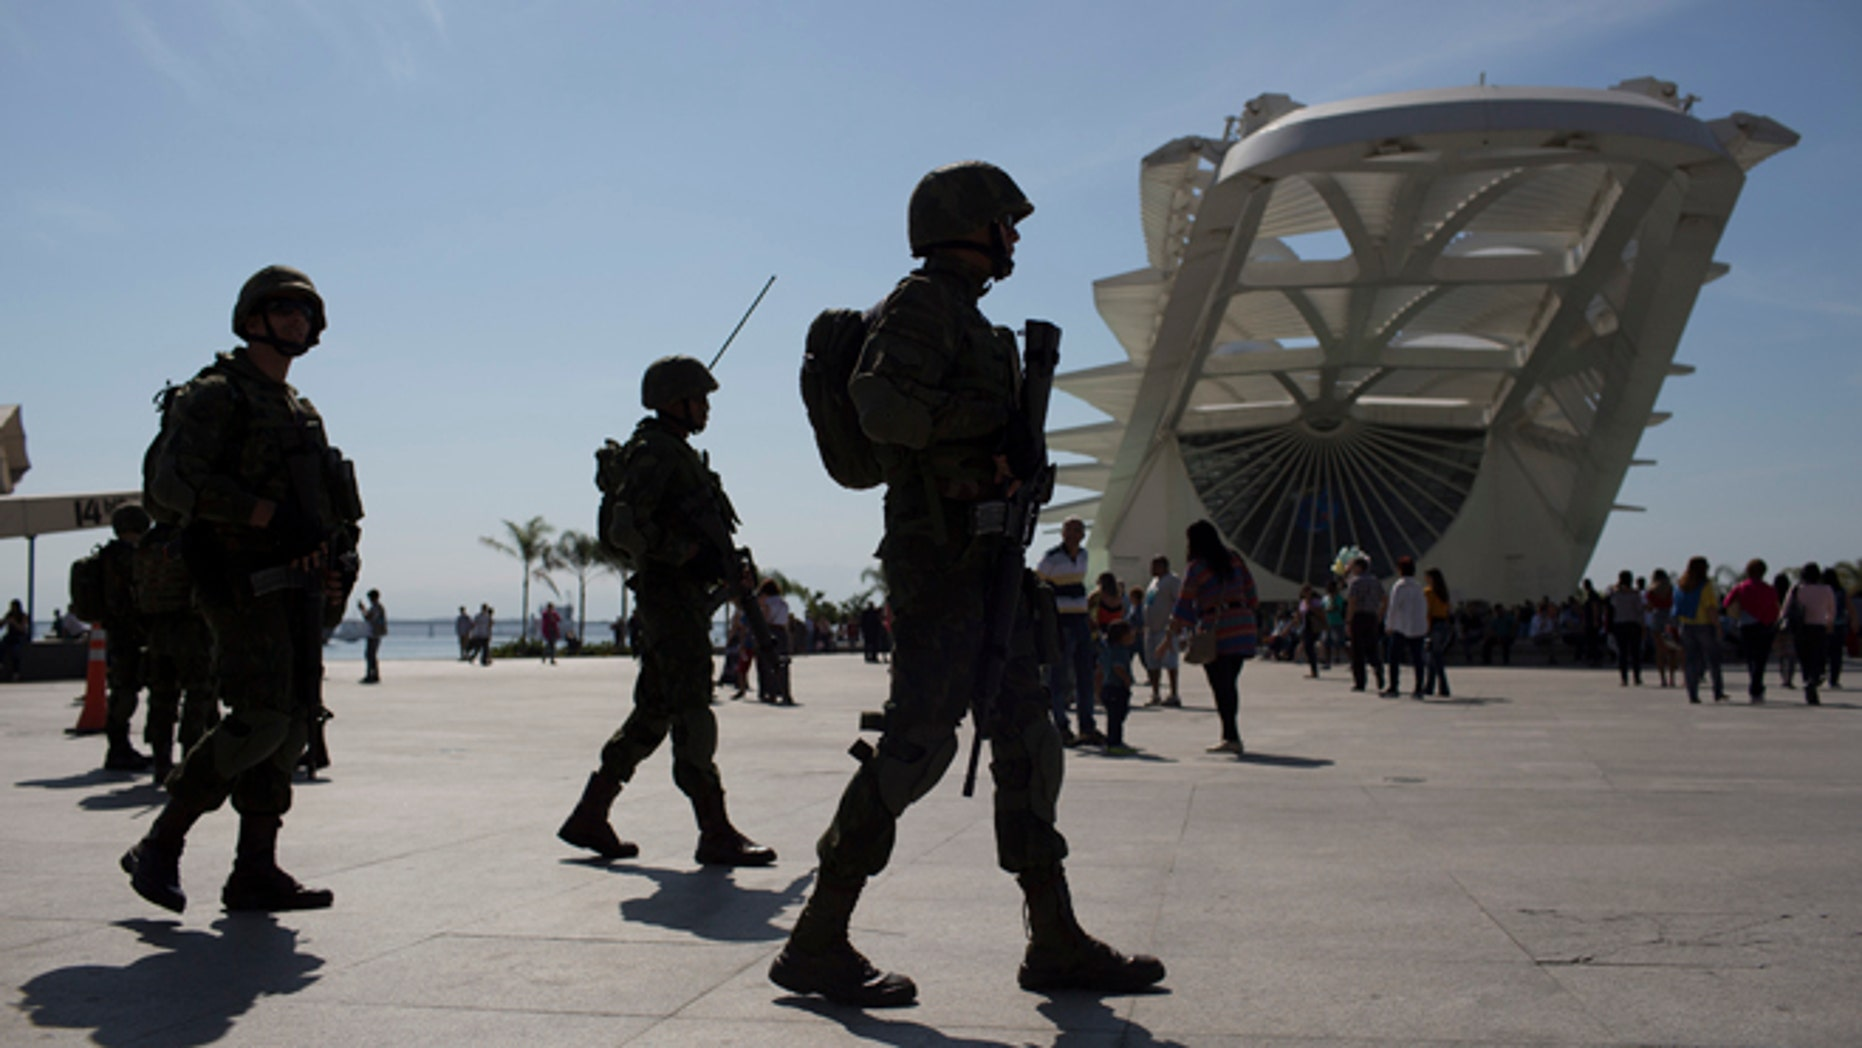 Soldiers patrol outside the Museum of Tomorrow in Rio de Janeiro, Brazil, Saturday, July 9, 2016. Roughly twice the security contingent at the London Olympics will be deployed during the August games in Rio, which are expected to draw thousands of foreigners to a city where armed muggings, stray bullets and turf wars between heavily armed drug gangs are routine. (AP Photo/Leo Correa)